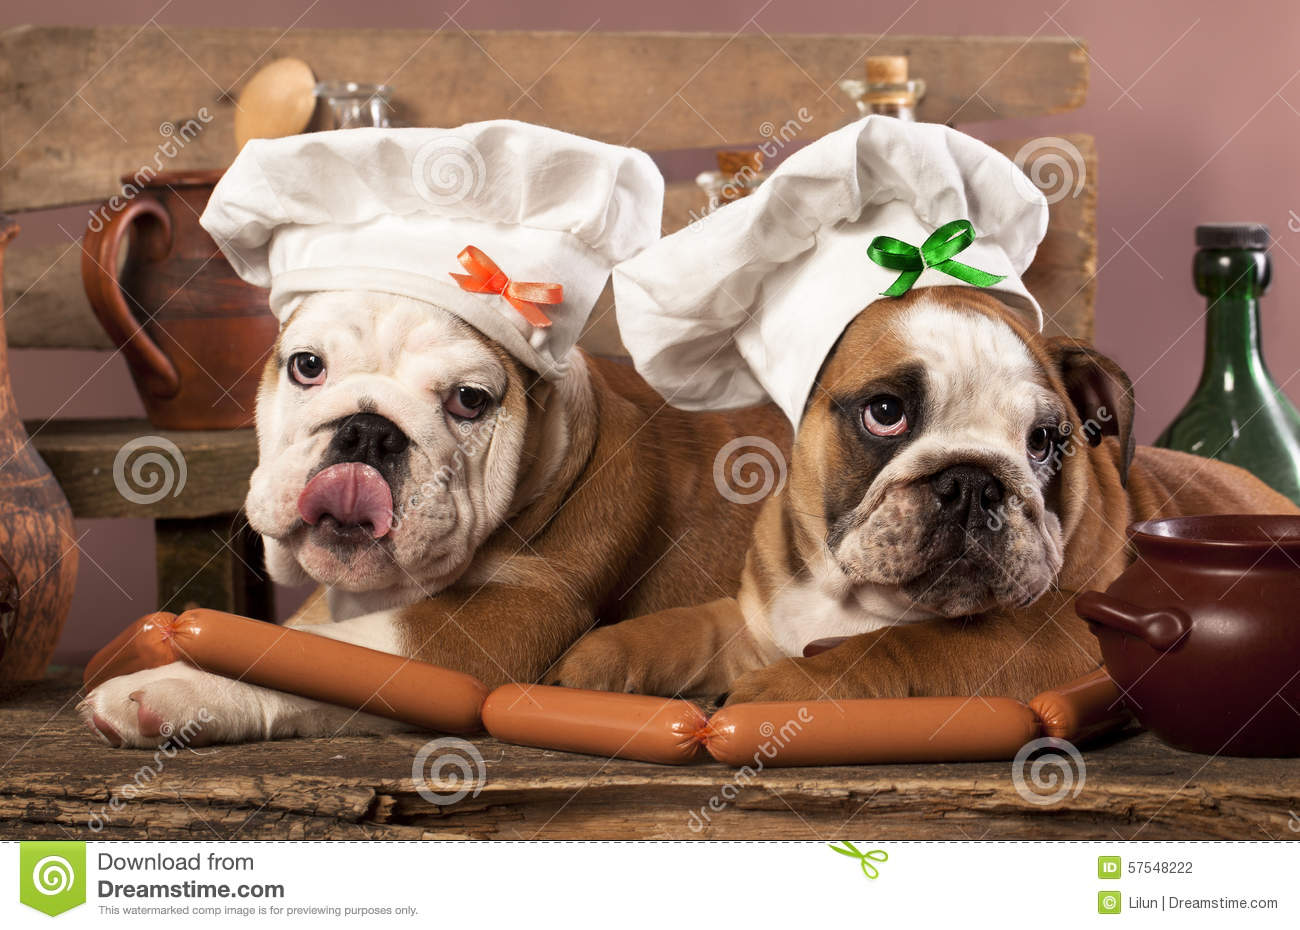 Big W Dog Food Puppies In Chef 39s Hat And Sausages Stock Photo Image Of